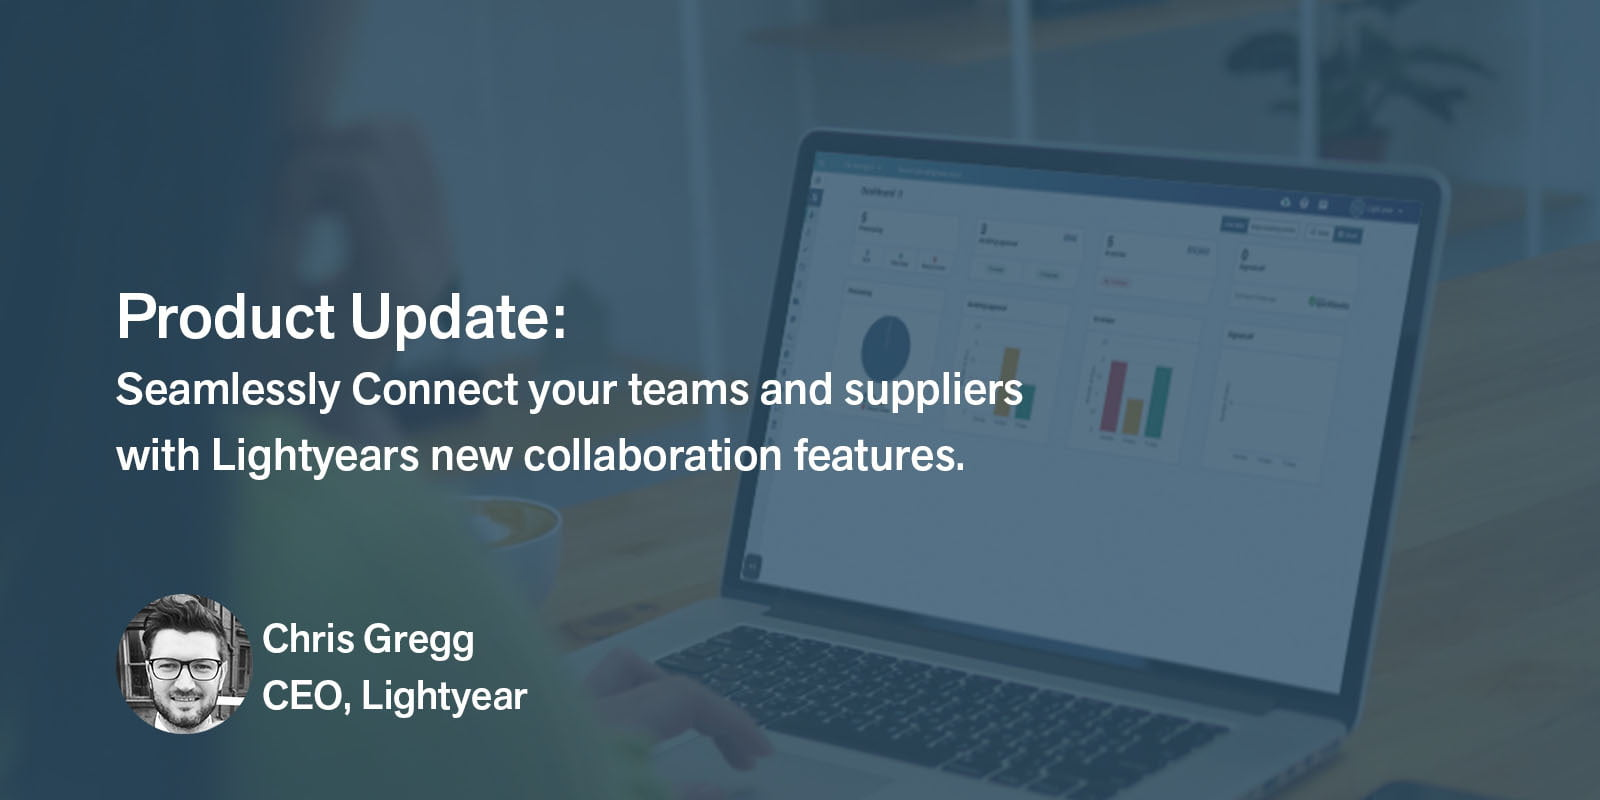 Seamlessly Connect your teams and suppliers with Lightyears new collaboration features.